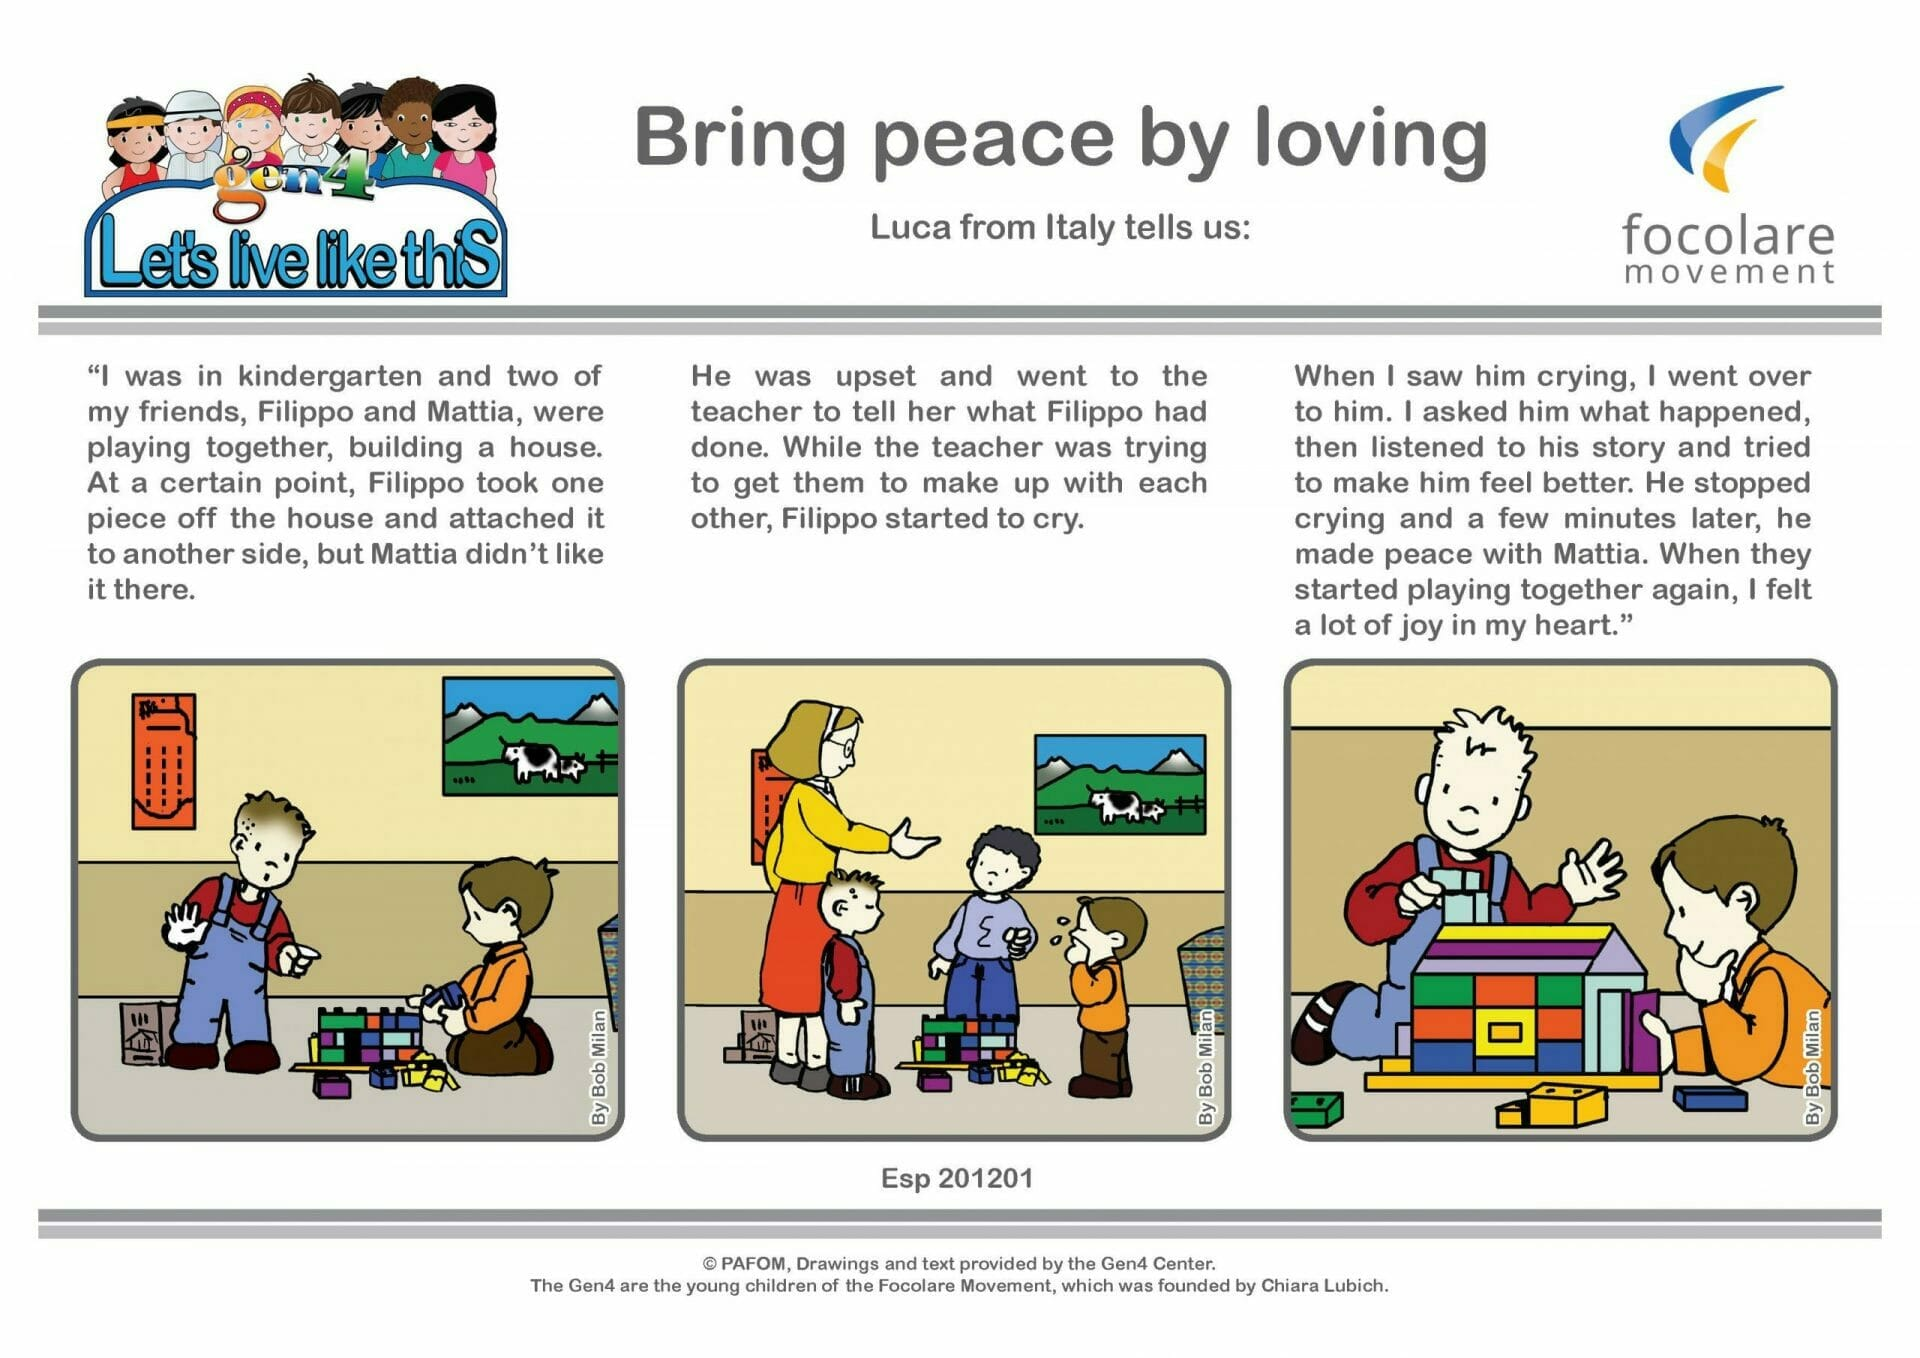 Bring peace by loving